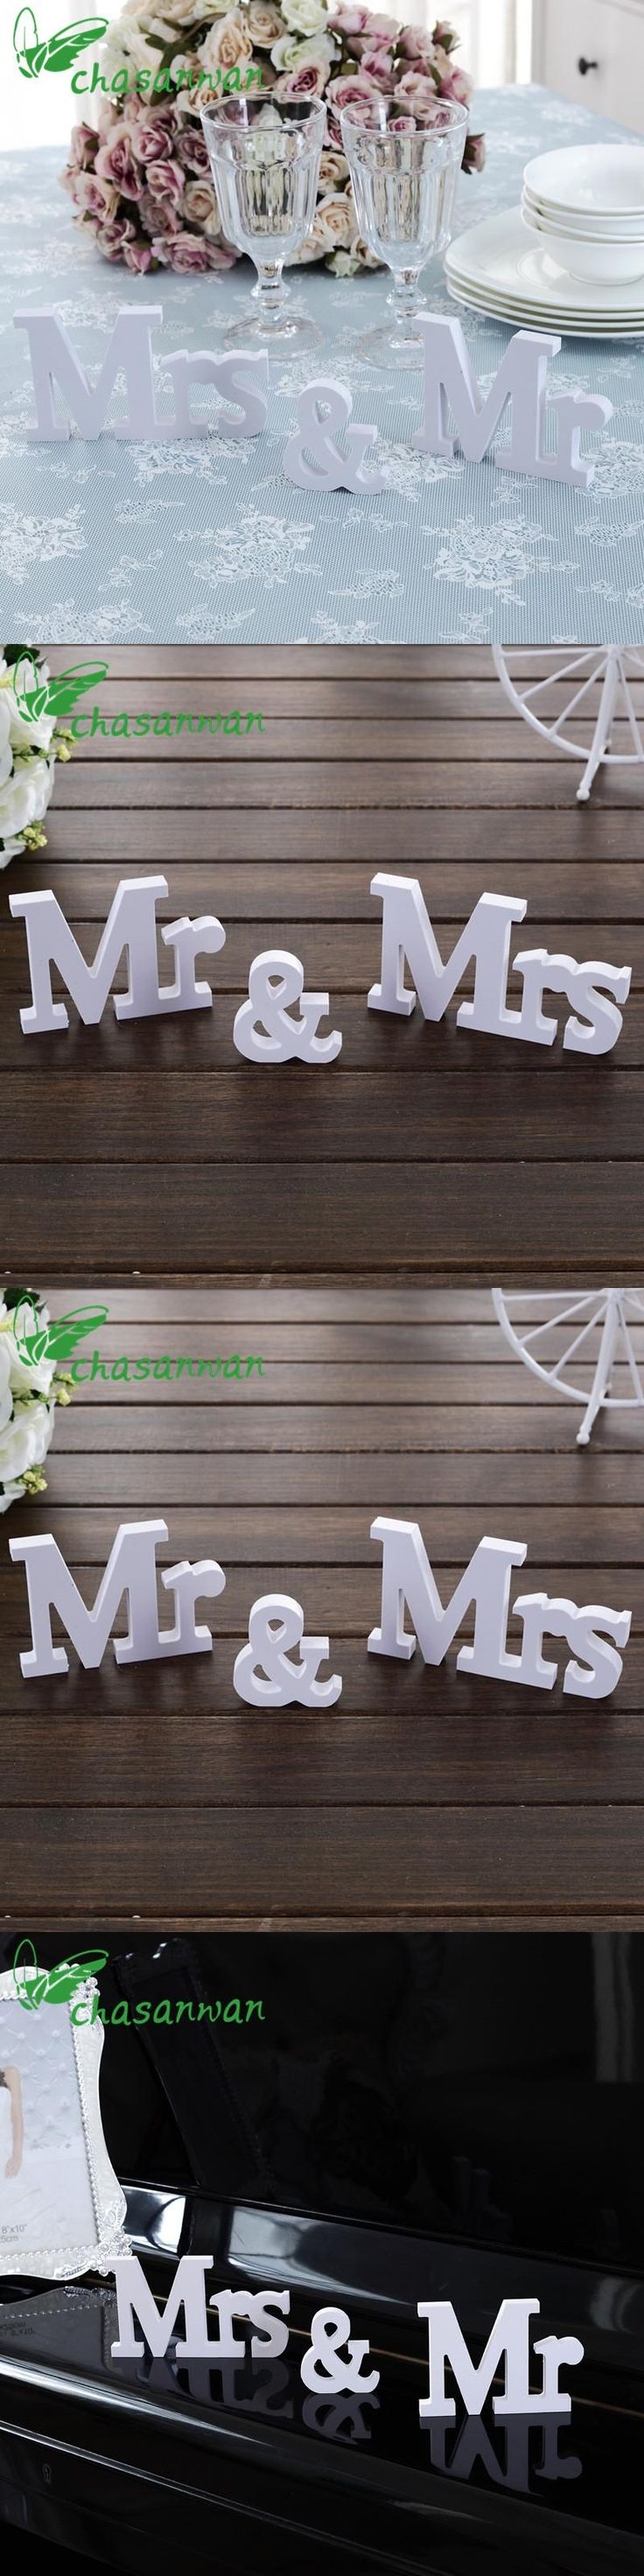 Hot 3 Pcs/set Wedding Decorations